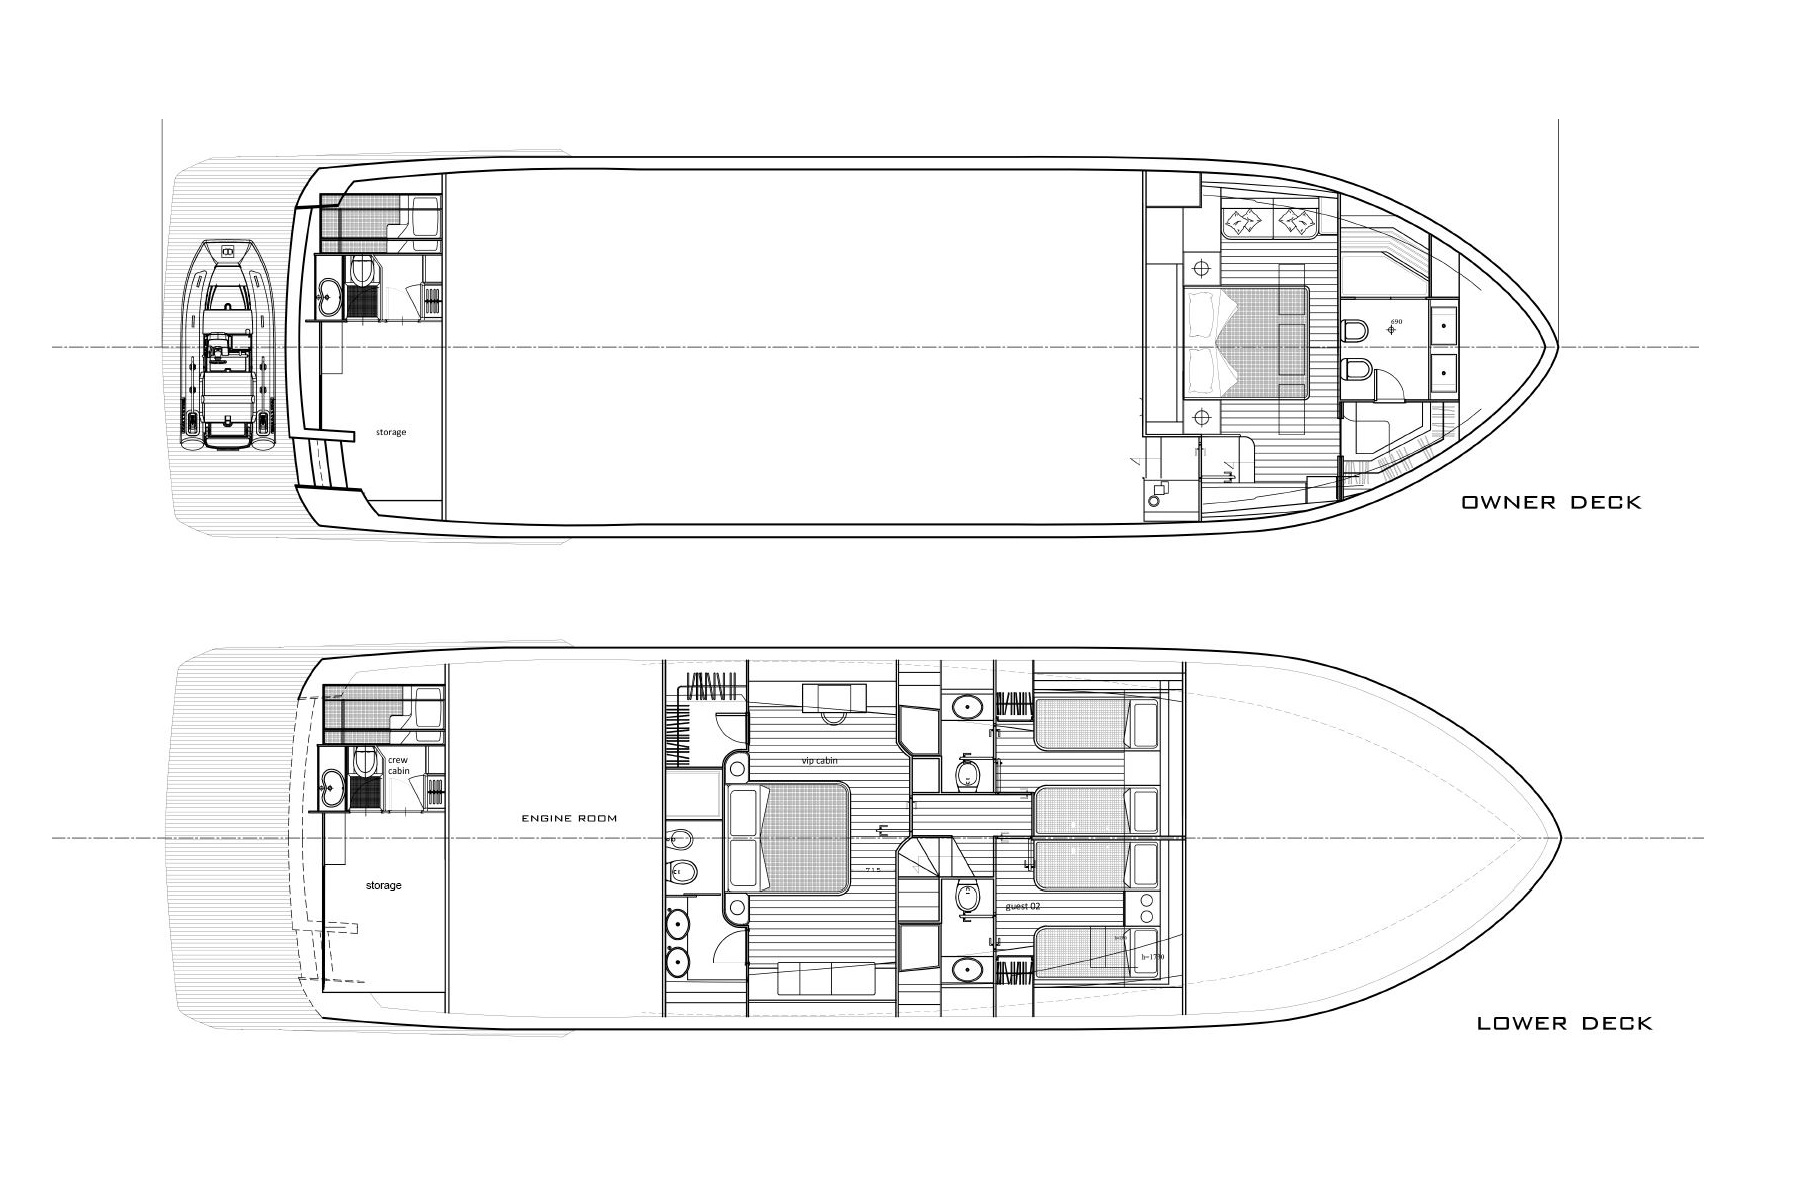 Deck Plan of M/Y Fast Cruise 22 New Build Yacht for Sale